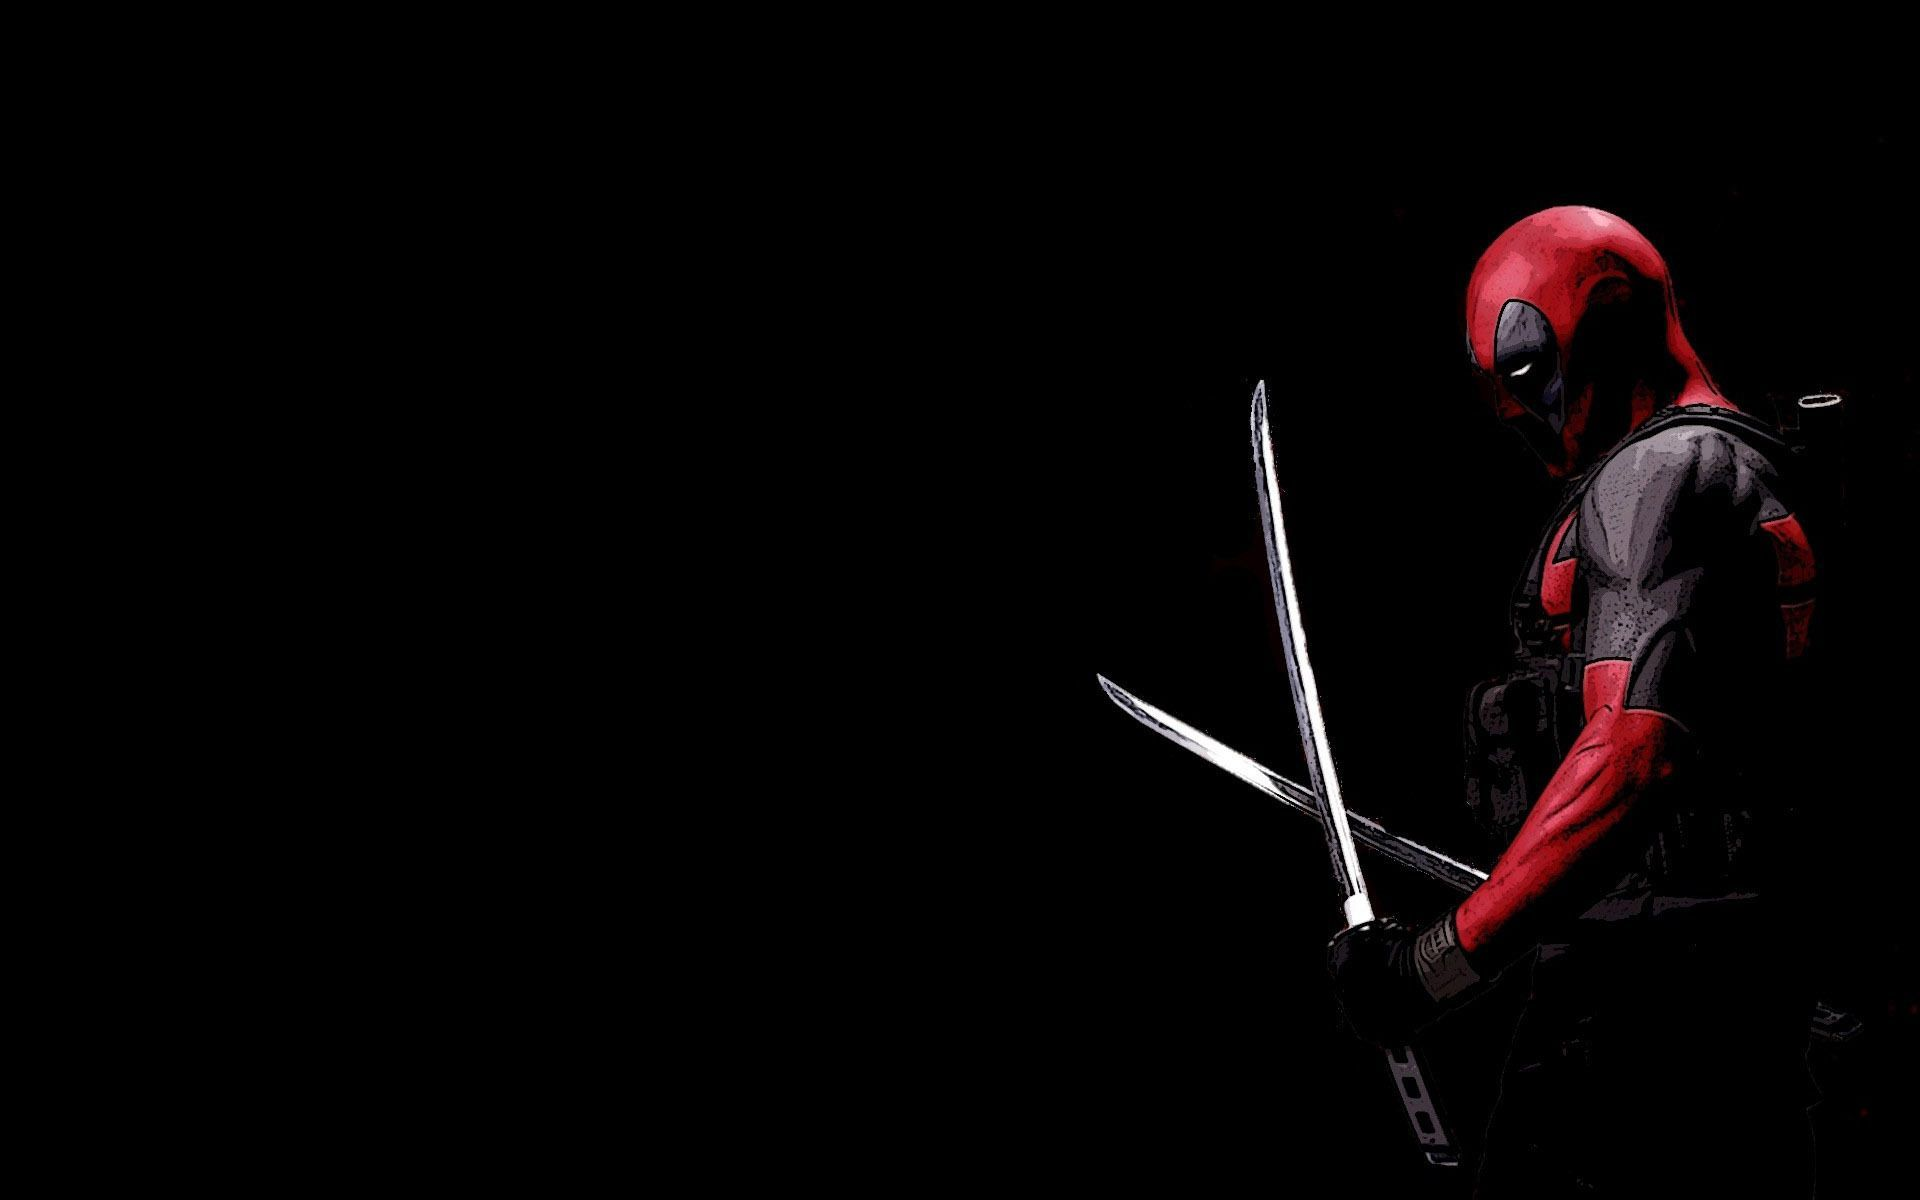 Deadpool Wallpapers Hd Deadpool Wallpaper Deadpool Wallpaper Desktop Deadpool Live Wallpaper